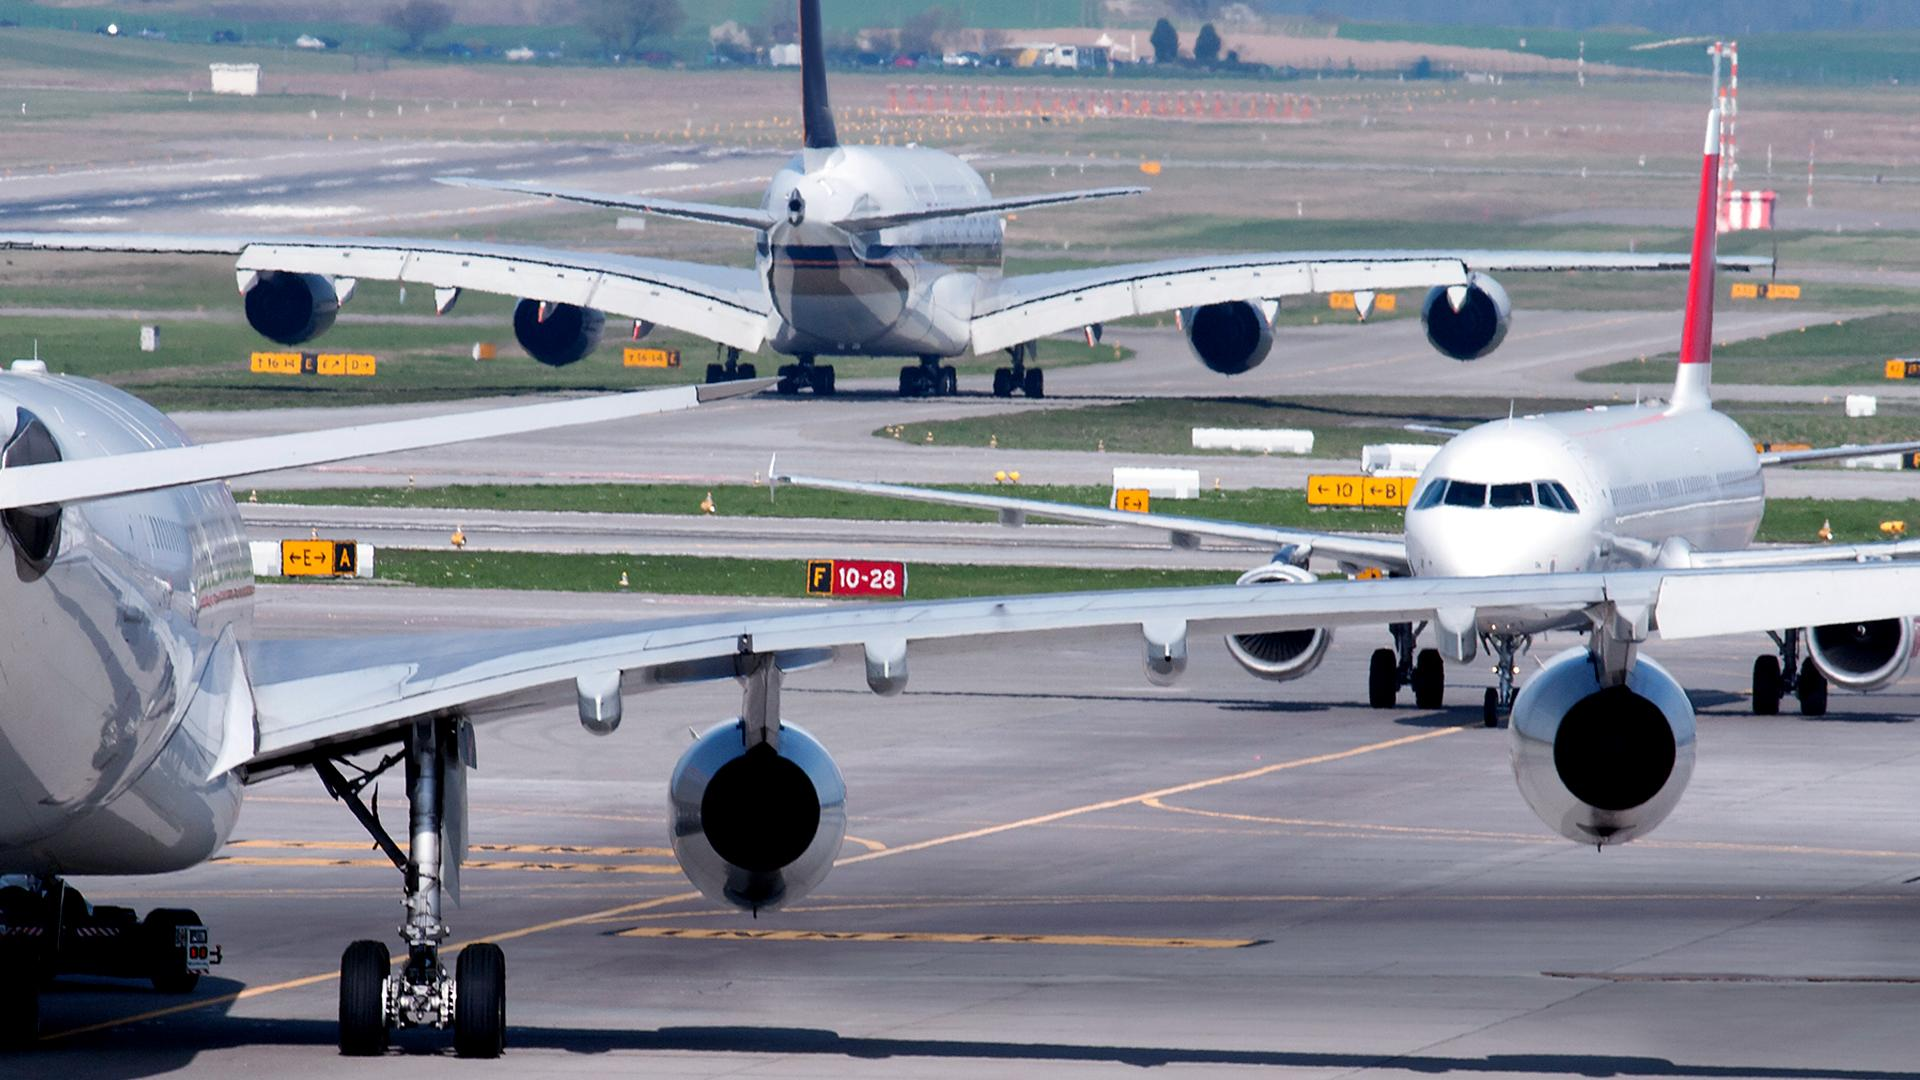 Airplanes at a busy airport